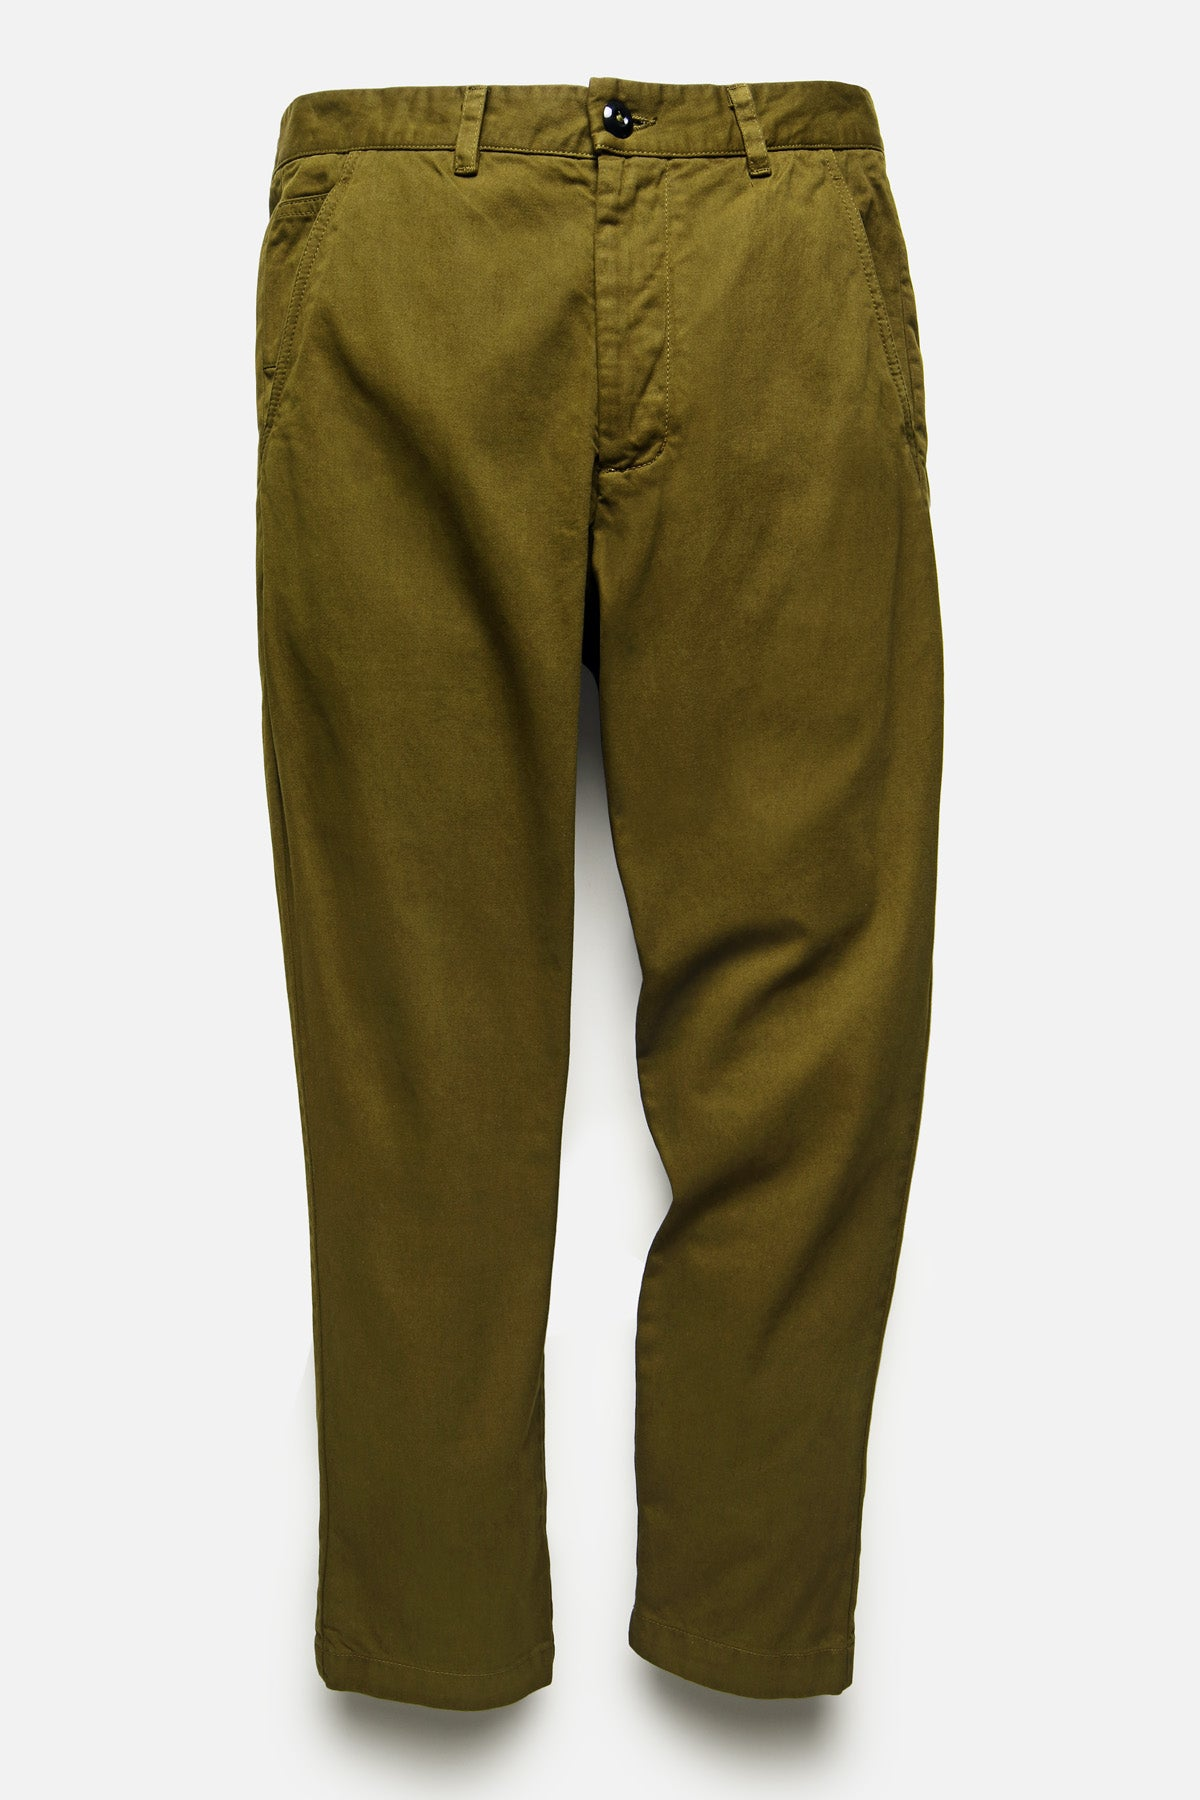 ATLAS TROUSER IN OLIVE - Fortune Goods